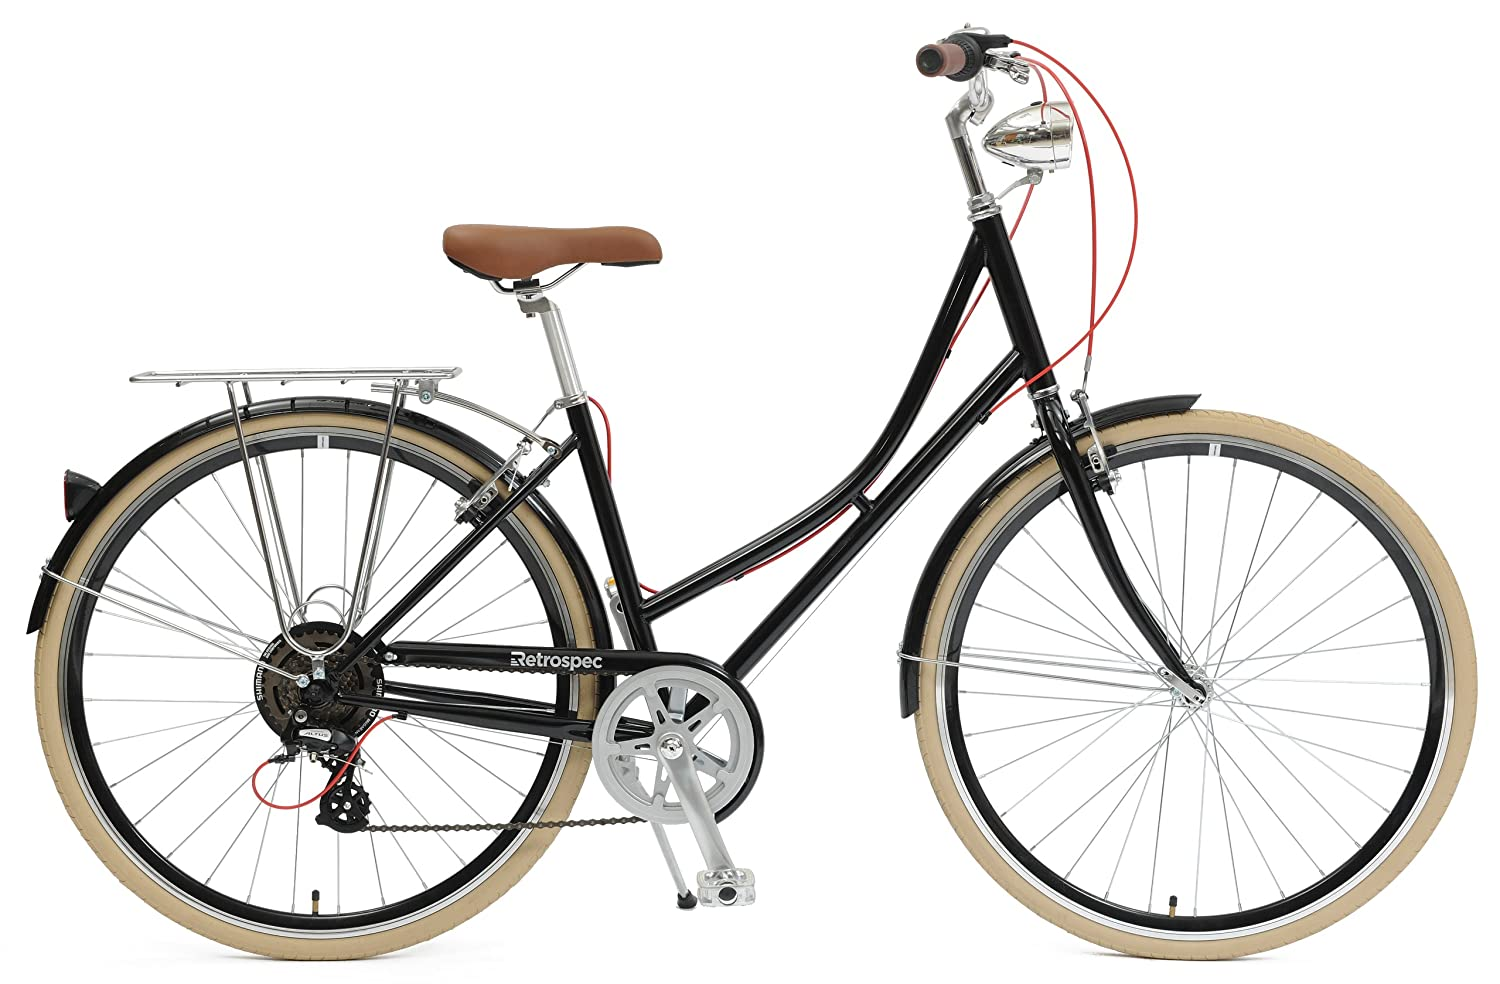 The Retrospec bicycles step-thru sid-7 dutch style hybrid